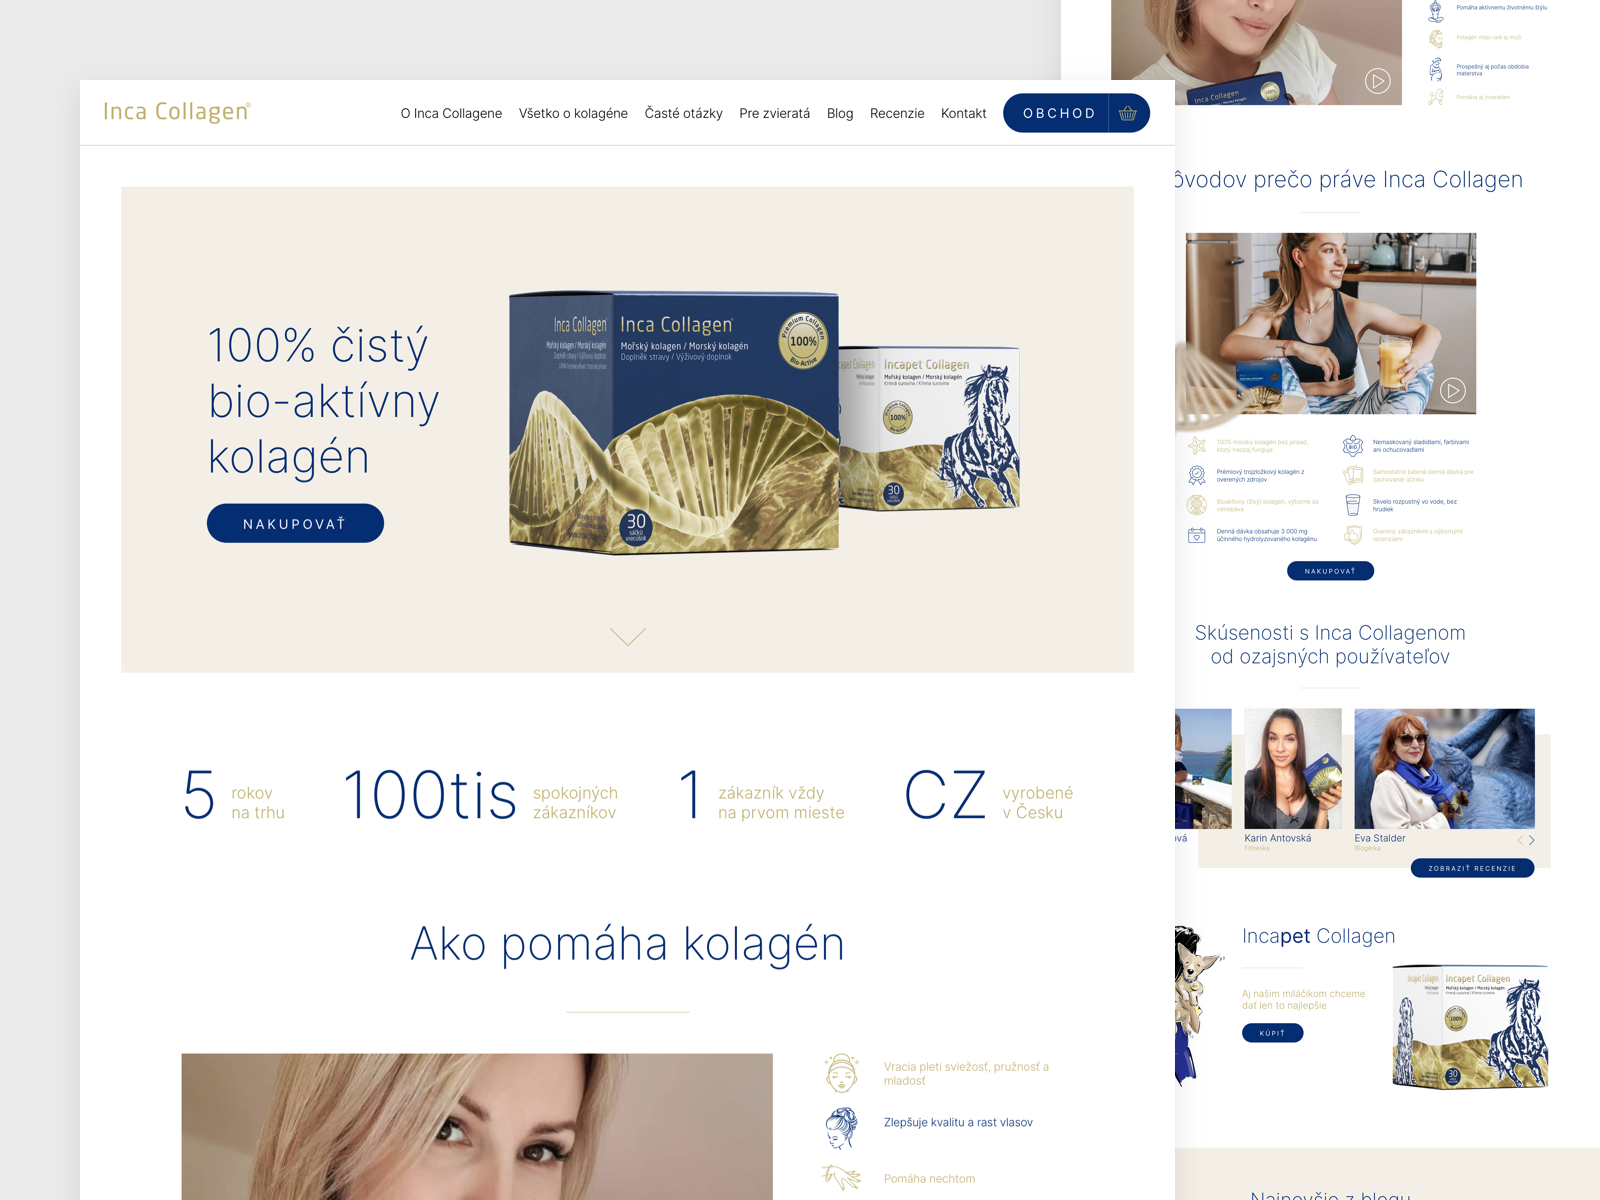 Inca Collagen website